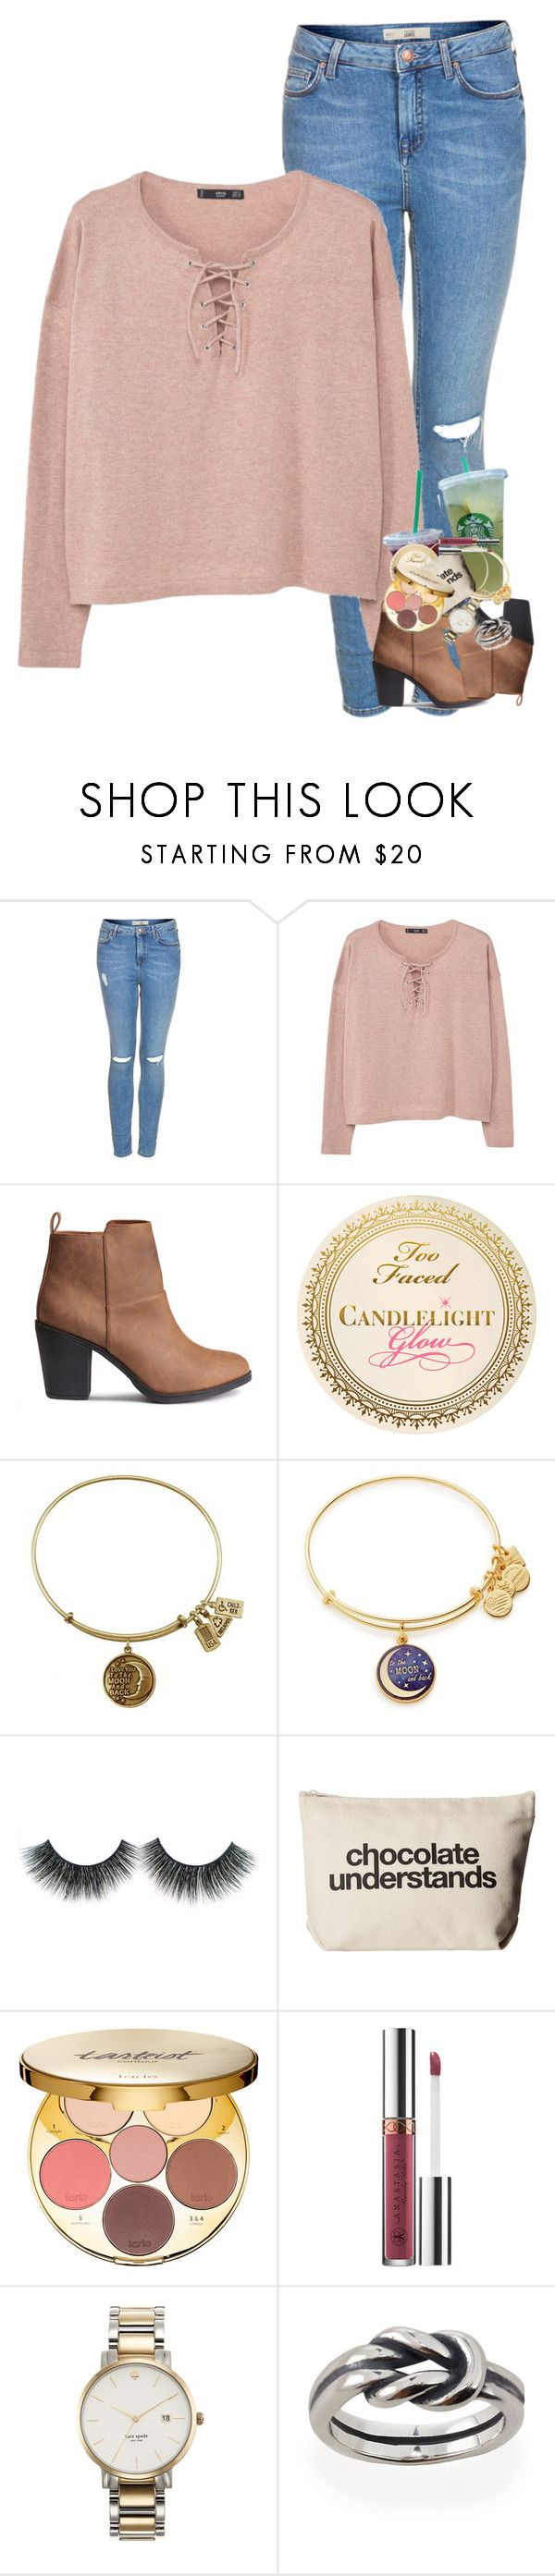 """""""Why am I listening to Latin music ?"""" by supremegrier ❤ liked on Polyvore featuring Topshop, MANGO, Alex and Ani, Dogeared, tarte, Anastasia Beverly Hills and Kate Spade"""